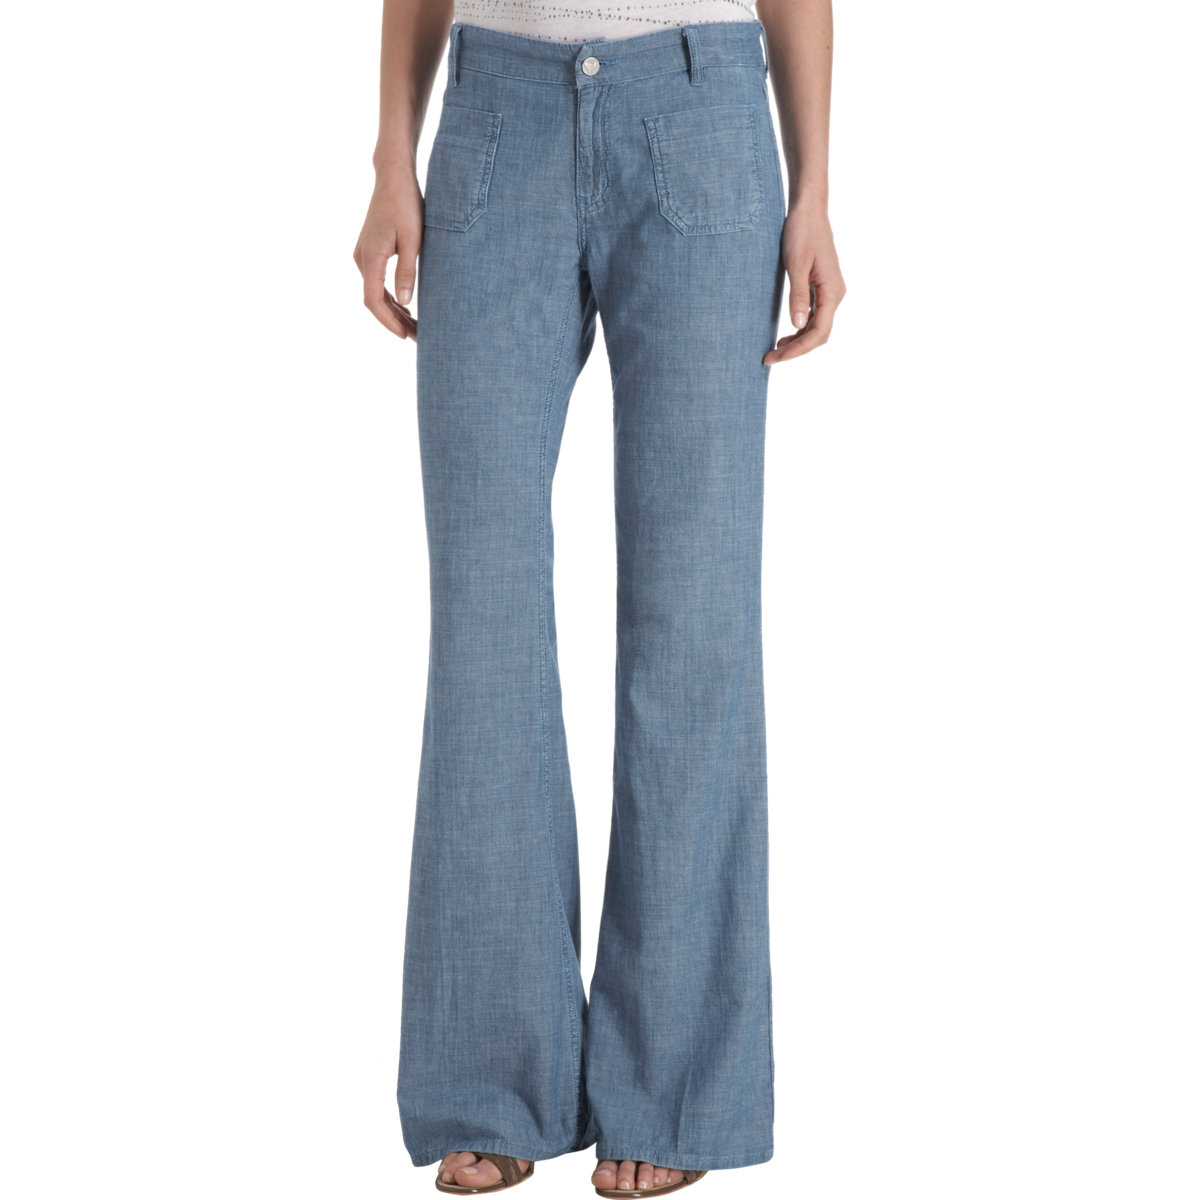 Mih jeans miramar mid rise wide leg chambray jeans in blue for Chambray jeans